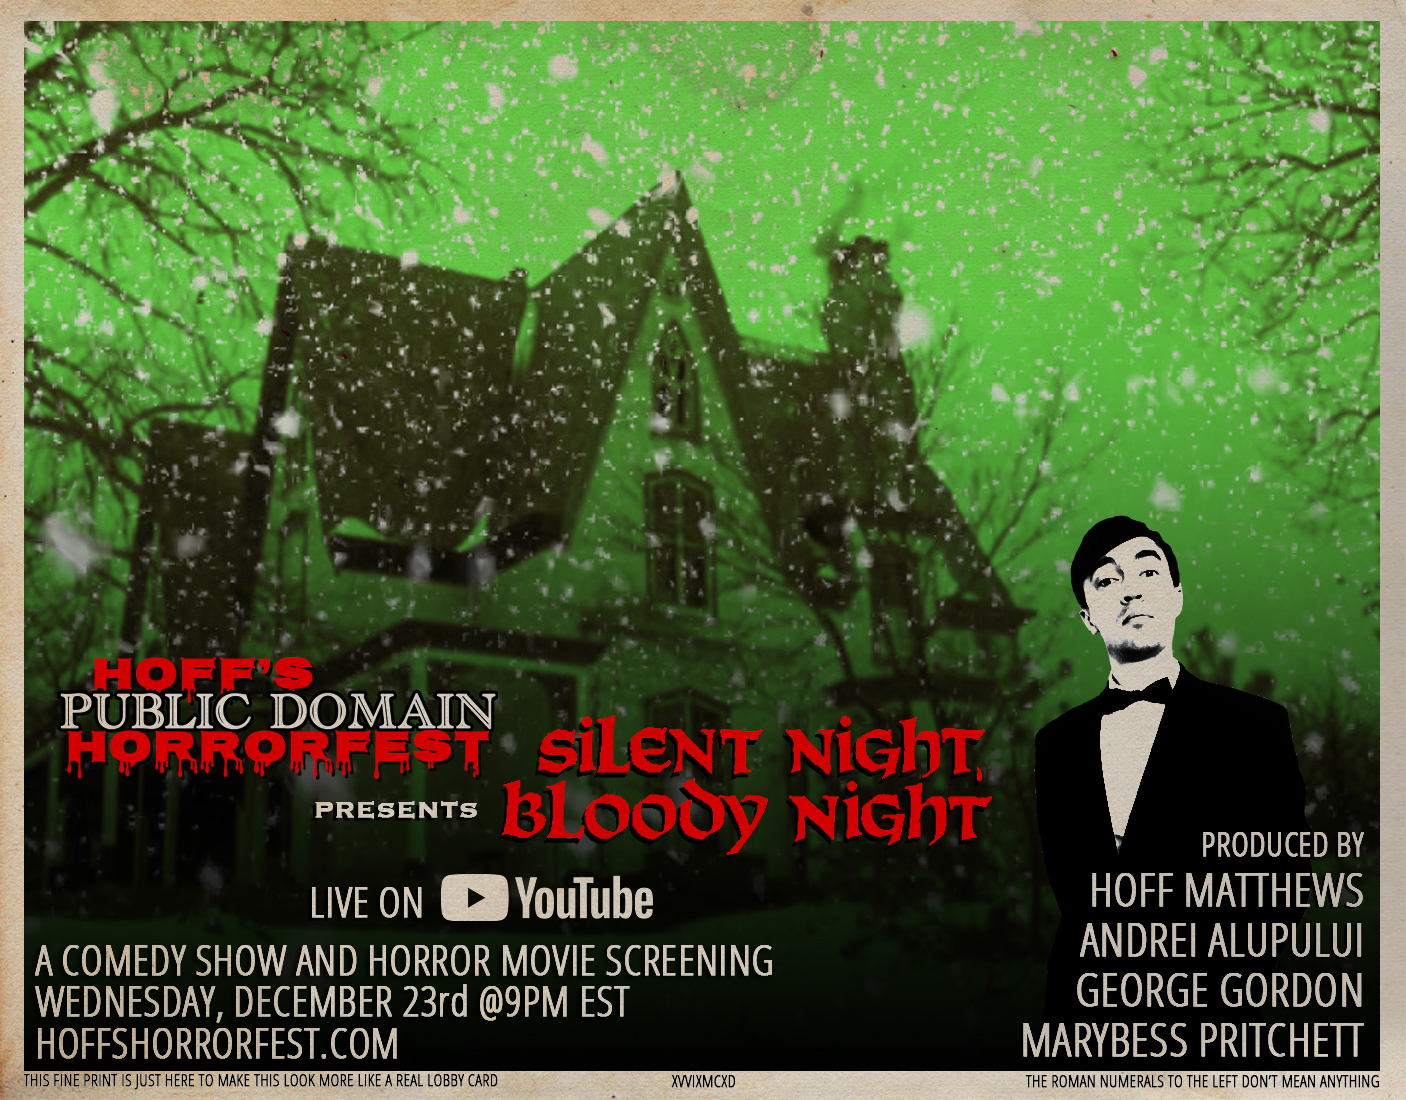 Hoff's Public Domain Horrorfest: Silent Night, Bloody Night